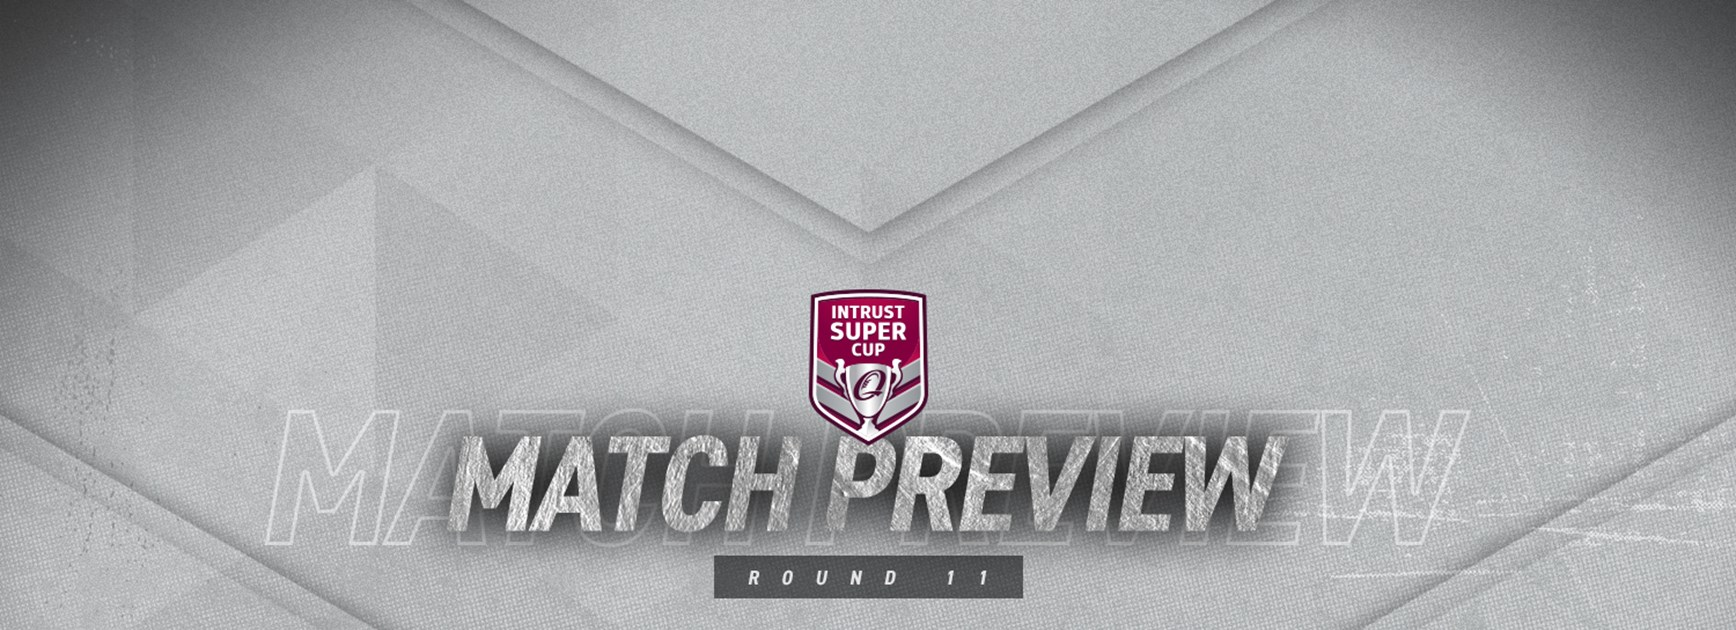 Intrust Super Cup Round 11 preview